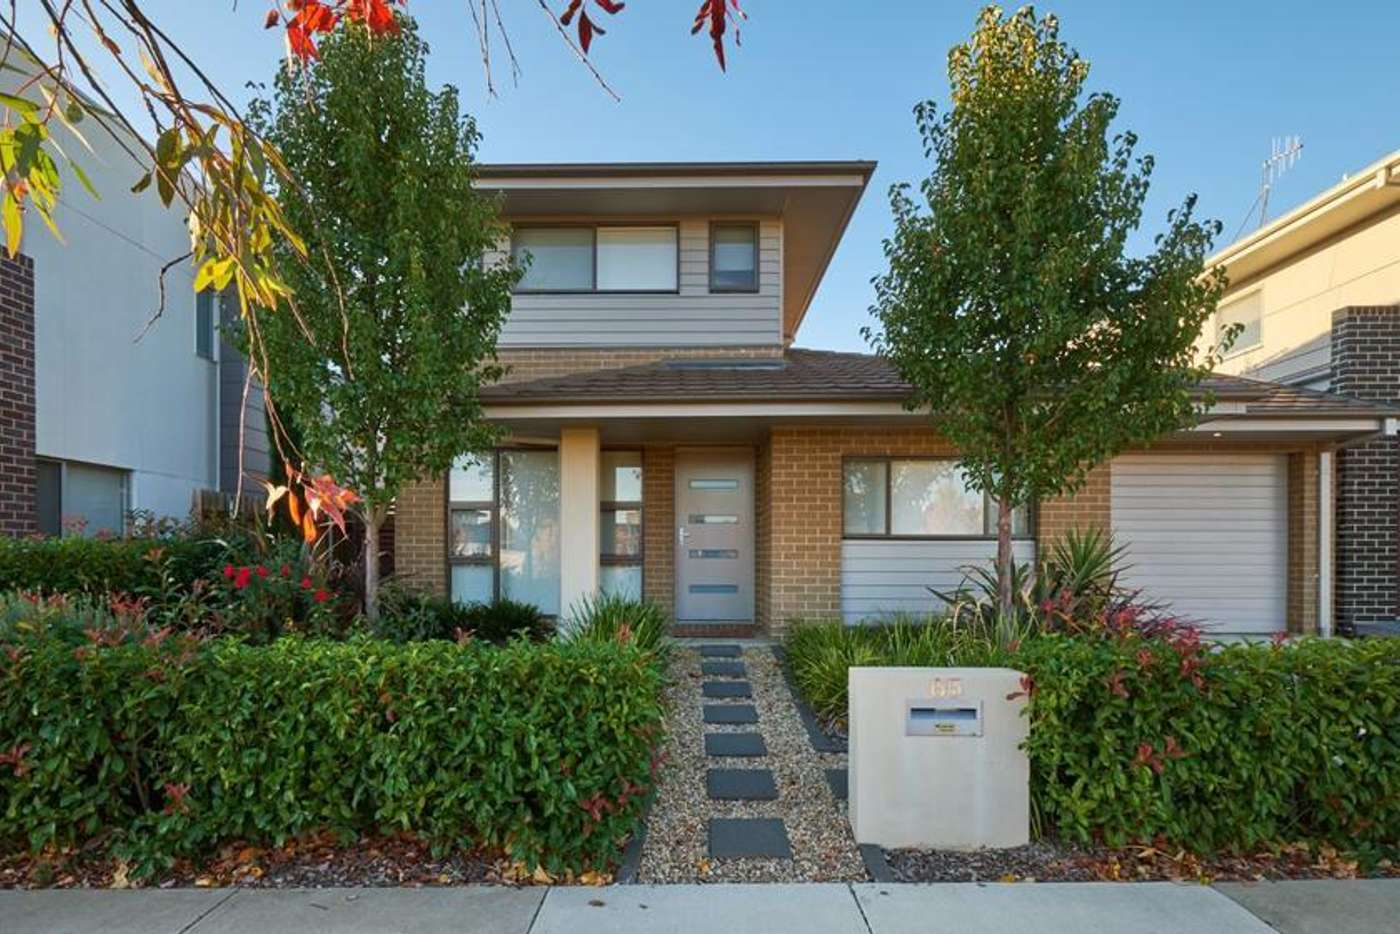 Main view of Homely townhouse listing, 65 Stowport Avenue, Crace ACT 2911